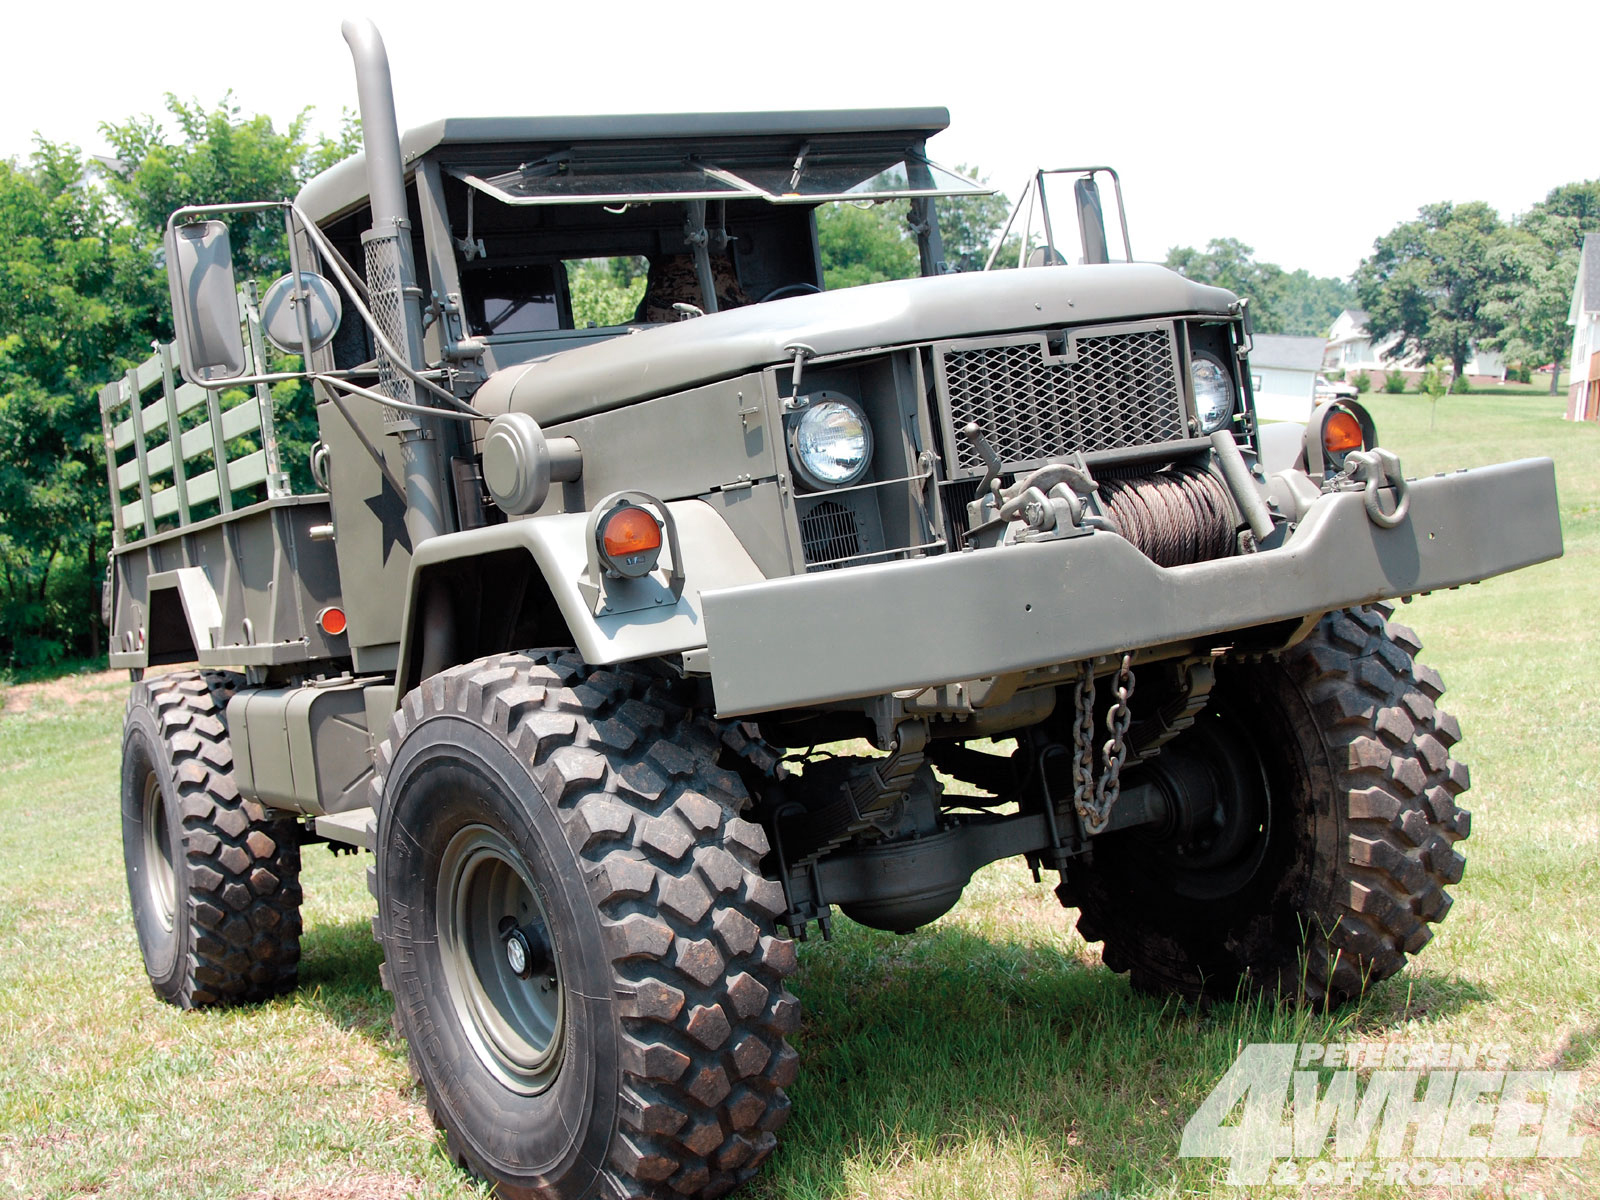 By sub category further 1950 Dodge Truck Grill 1950 Dodge Truck Wheelbase 2 further Photos further Dodge D200 Crew For Sale likewise Investment Property Tips And Tricks. on 2015 dodge power wagon for sale craigslist